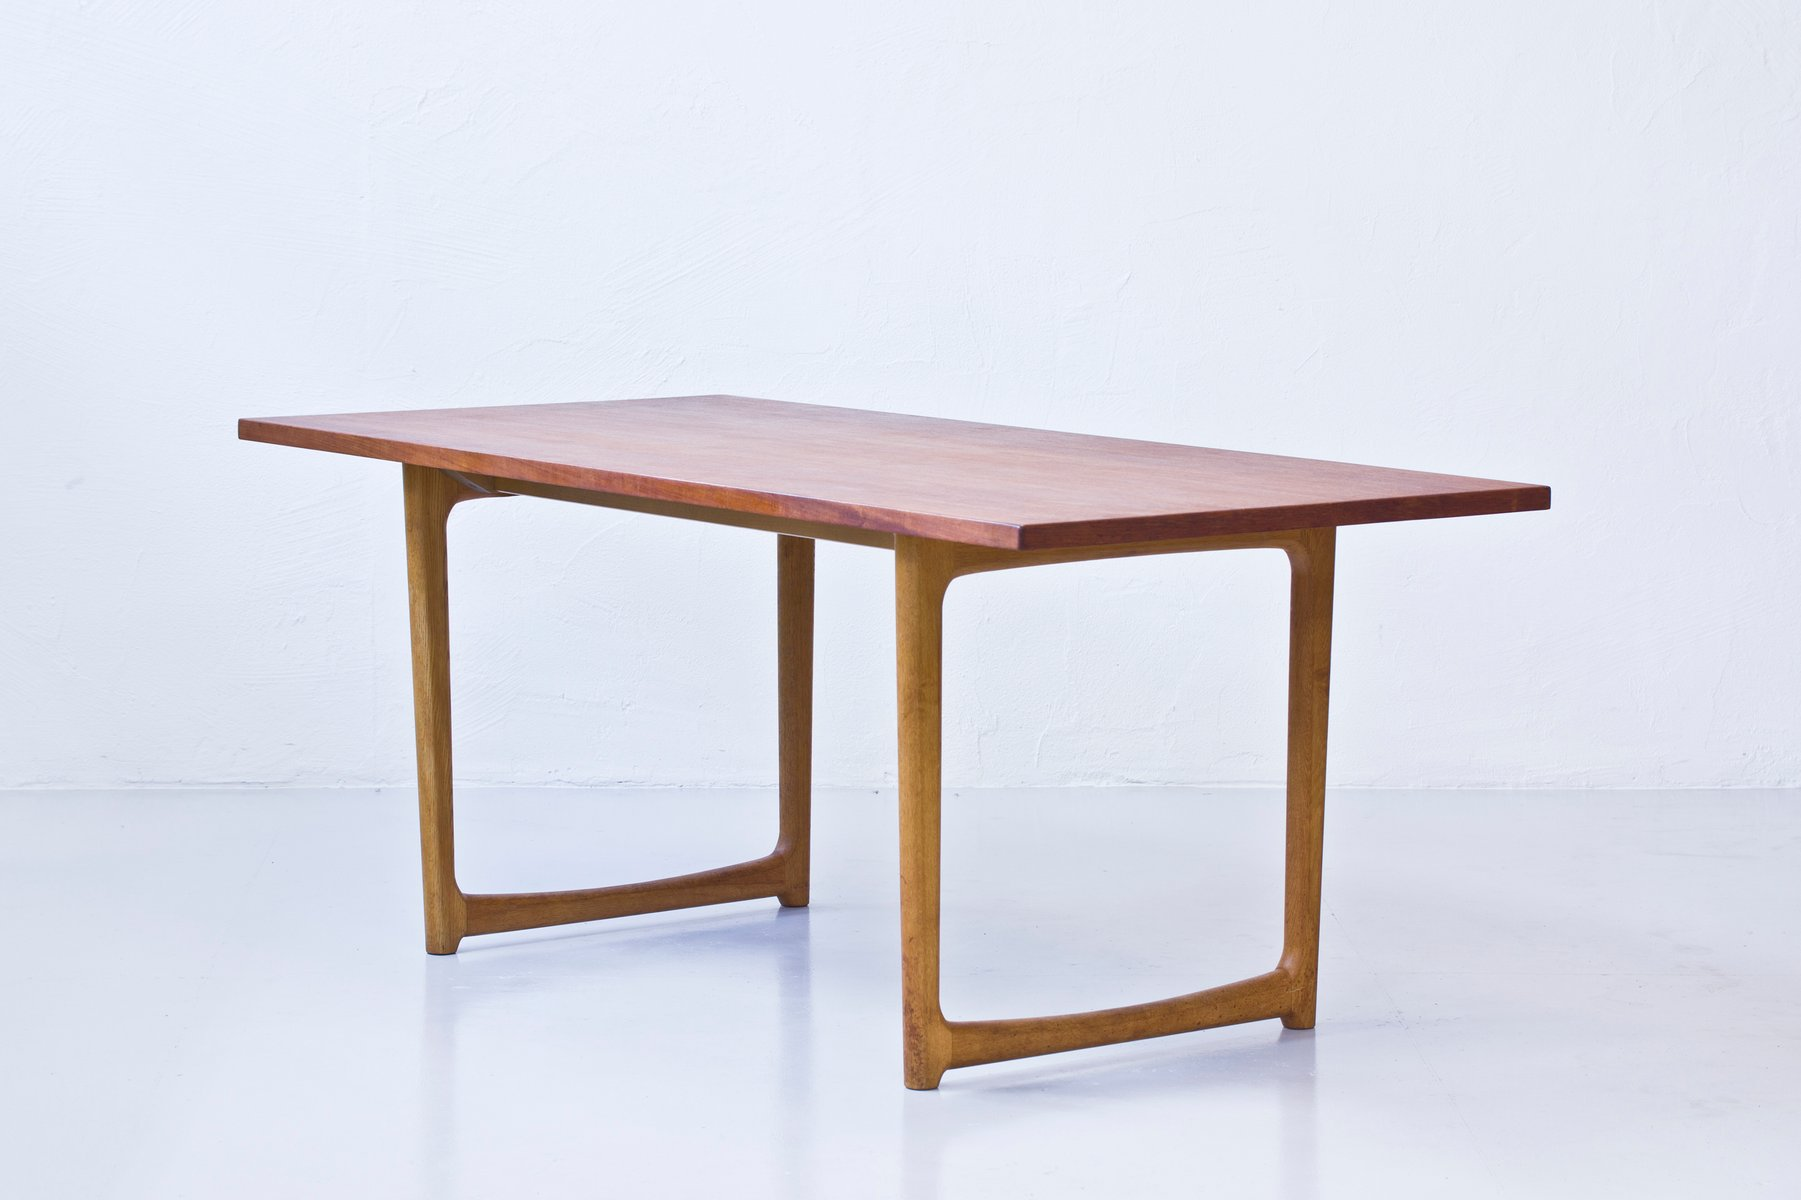 Danish Oak And Teak Dining Table For Sale At Pamono